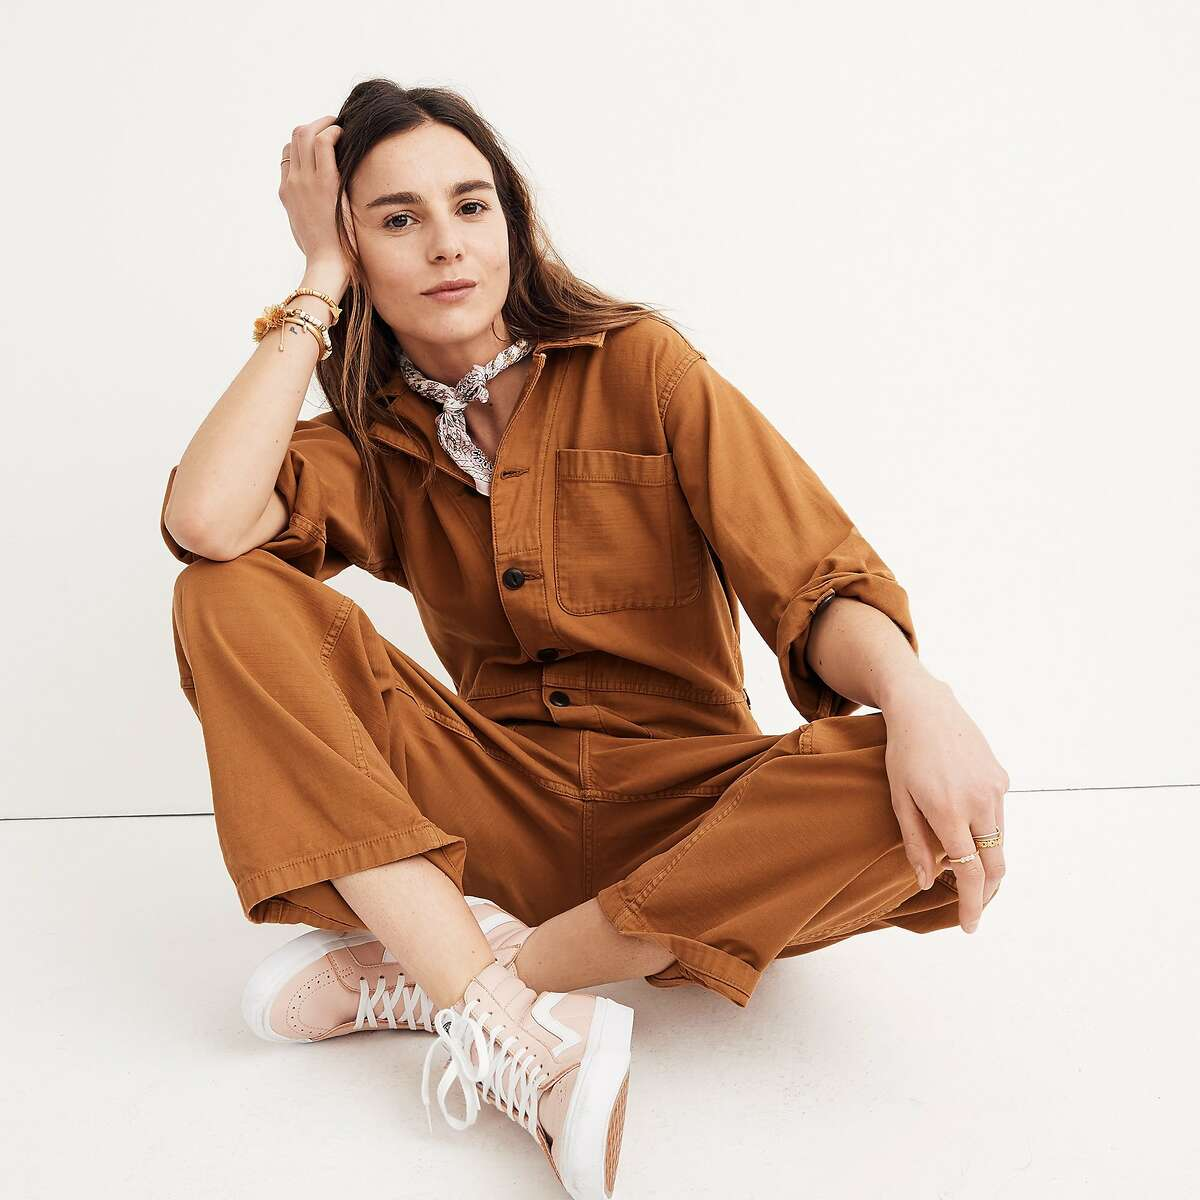 Mark Kolski�s one-of-a-kind vintage reconstructed jumpsuits speak to the Madewell woman�artful, timelessly cool, and a bit of a tomboy ($175-$350, Madewell, 850 Market Street, S.F.)